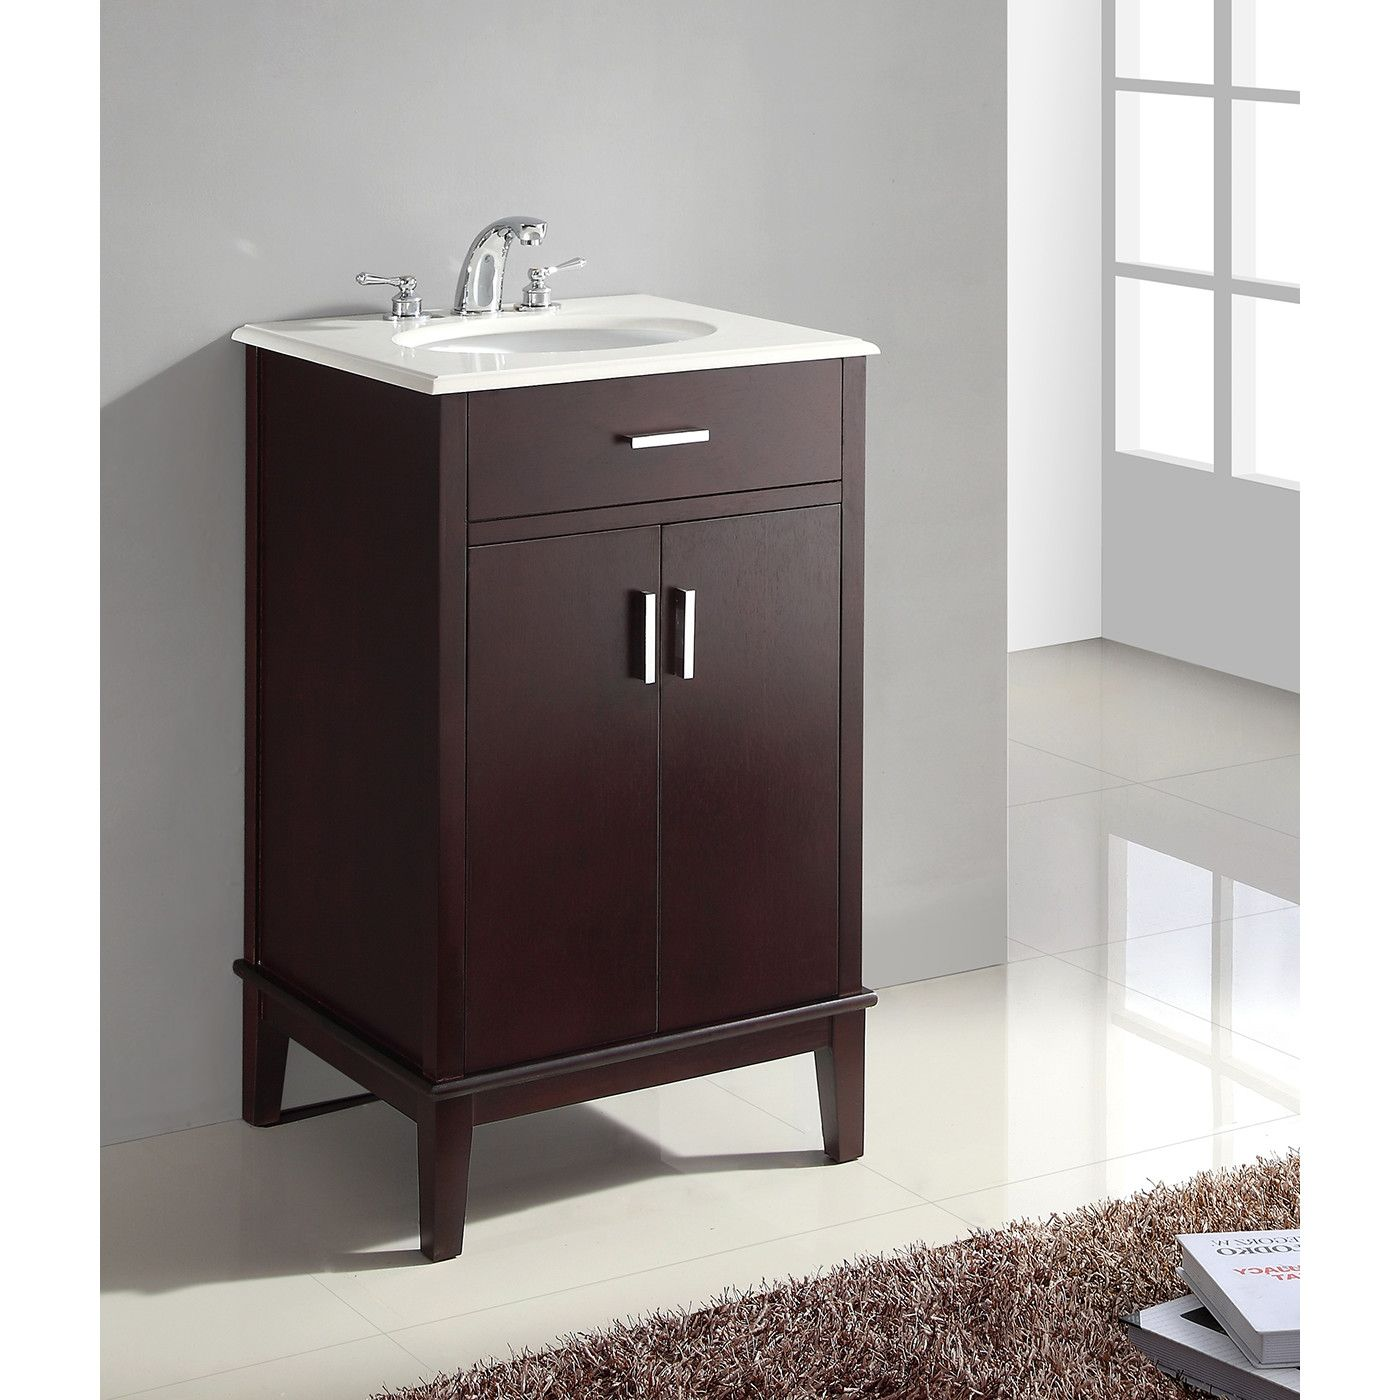 Cheap bathroom vanities under 24200 -  299 Simpli Home Urban Loft 21 Single Bathroom Vanity Set